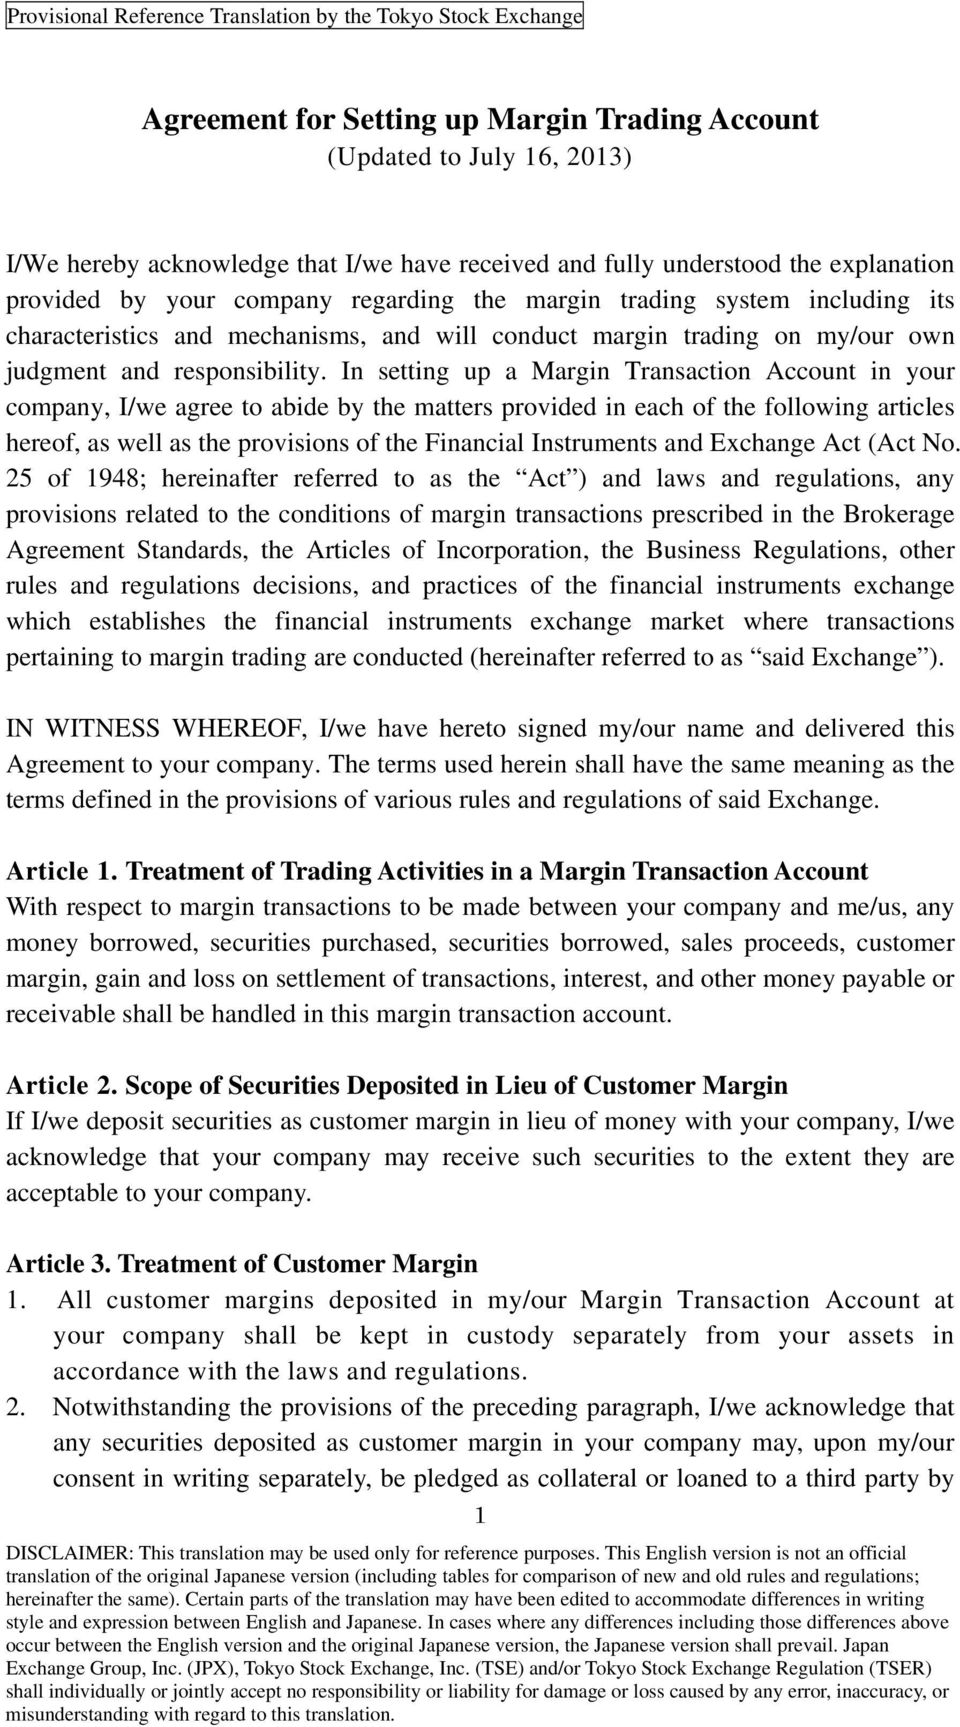 In setting up a Margin Transaction Account in your company, I/we agree to abide by the matters provided in each of the following articles hereof, as well as the provisions of the Financial